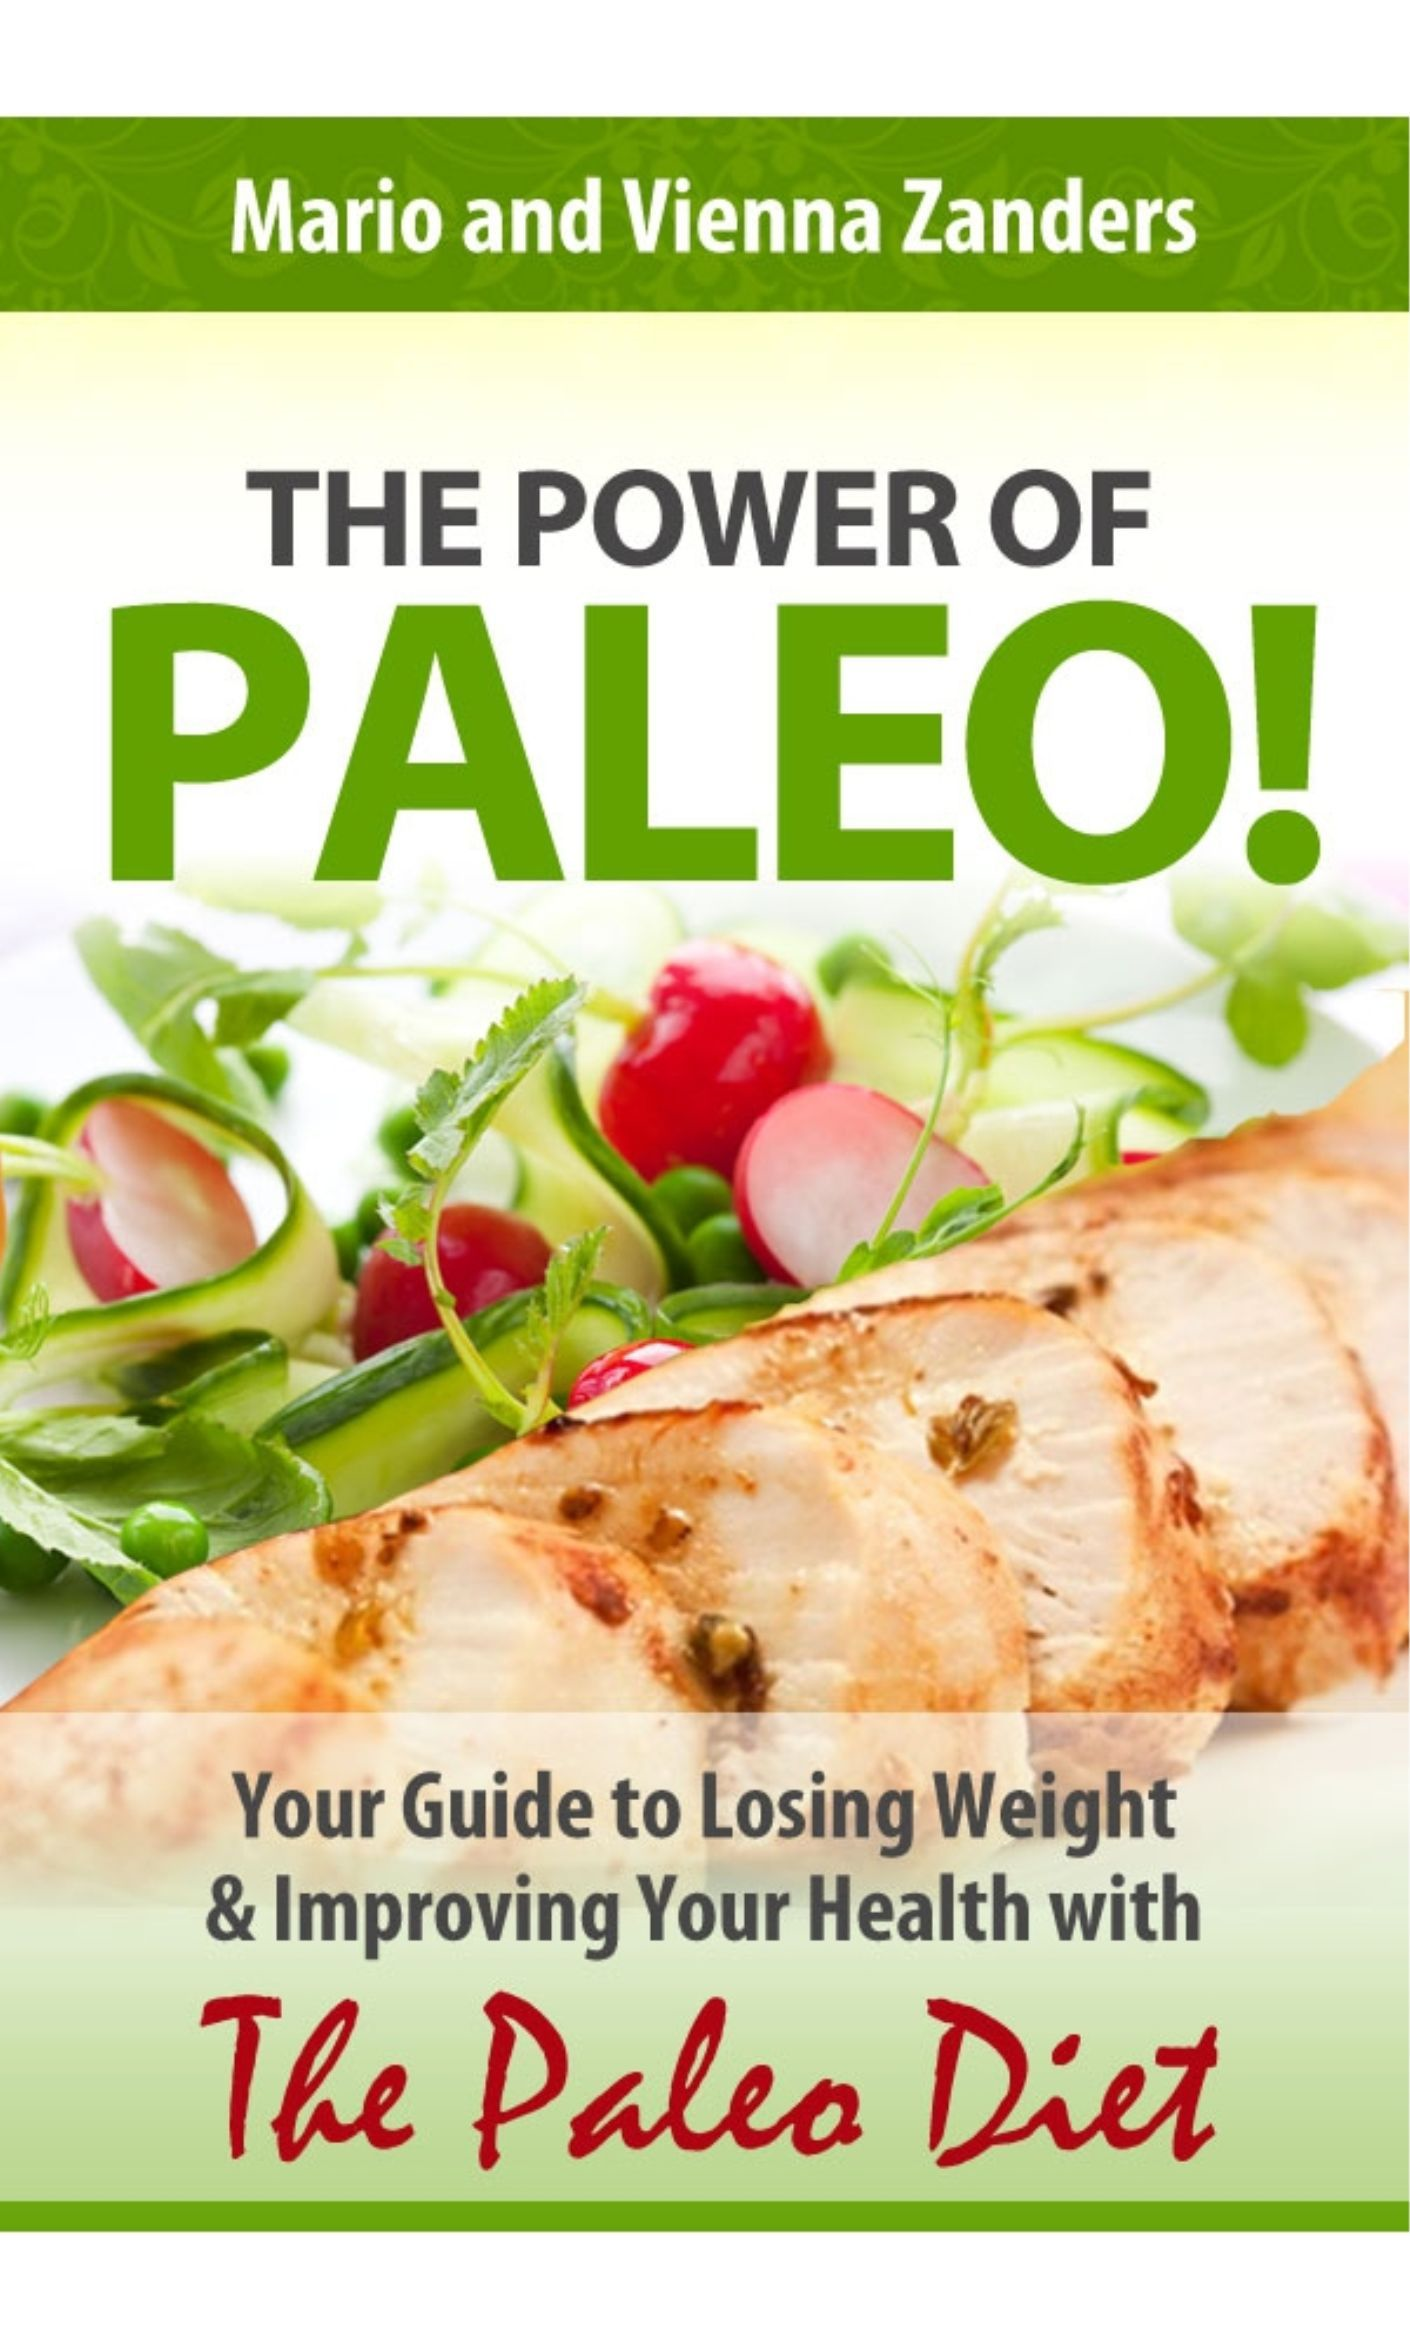 The Power of Paleo: Your Guide to Losing Weight with the Paleo Diet (PLUS Paleo Diet Recipes for Breakfast, Lunch & Dinner!) By: Mario Zanders